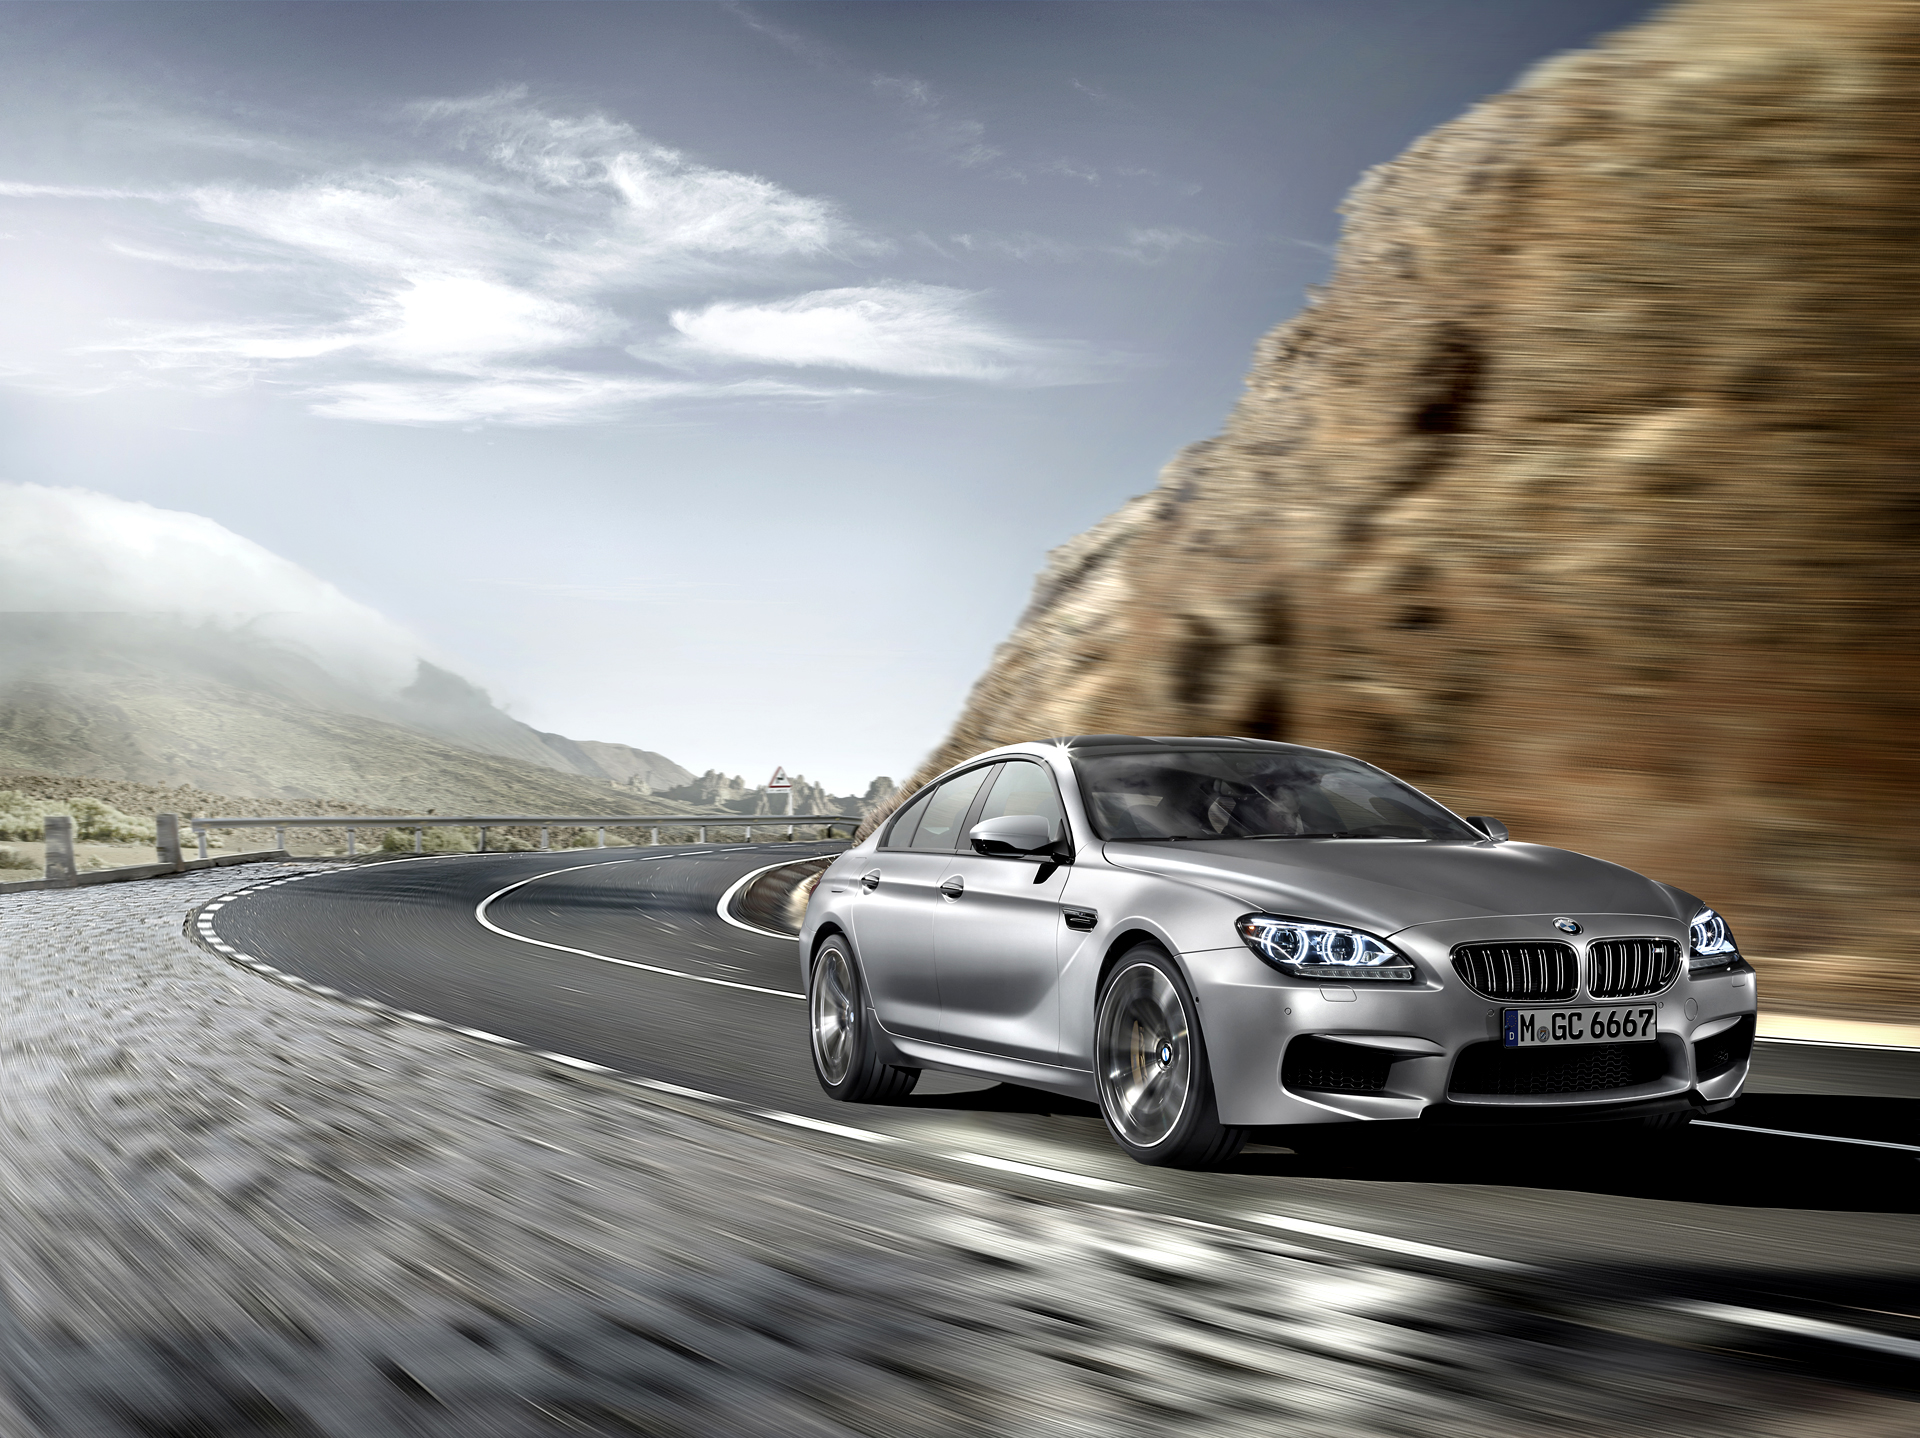 bmw m6 gran coup specification and new high res images. Black Bedroom Furniture Sets. Home Design Ideas